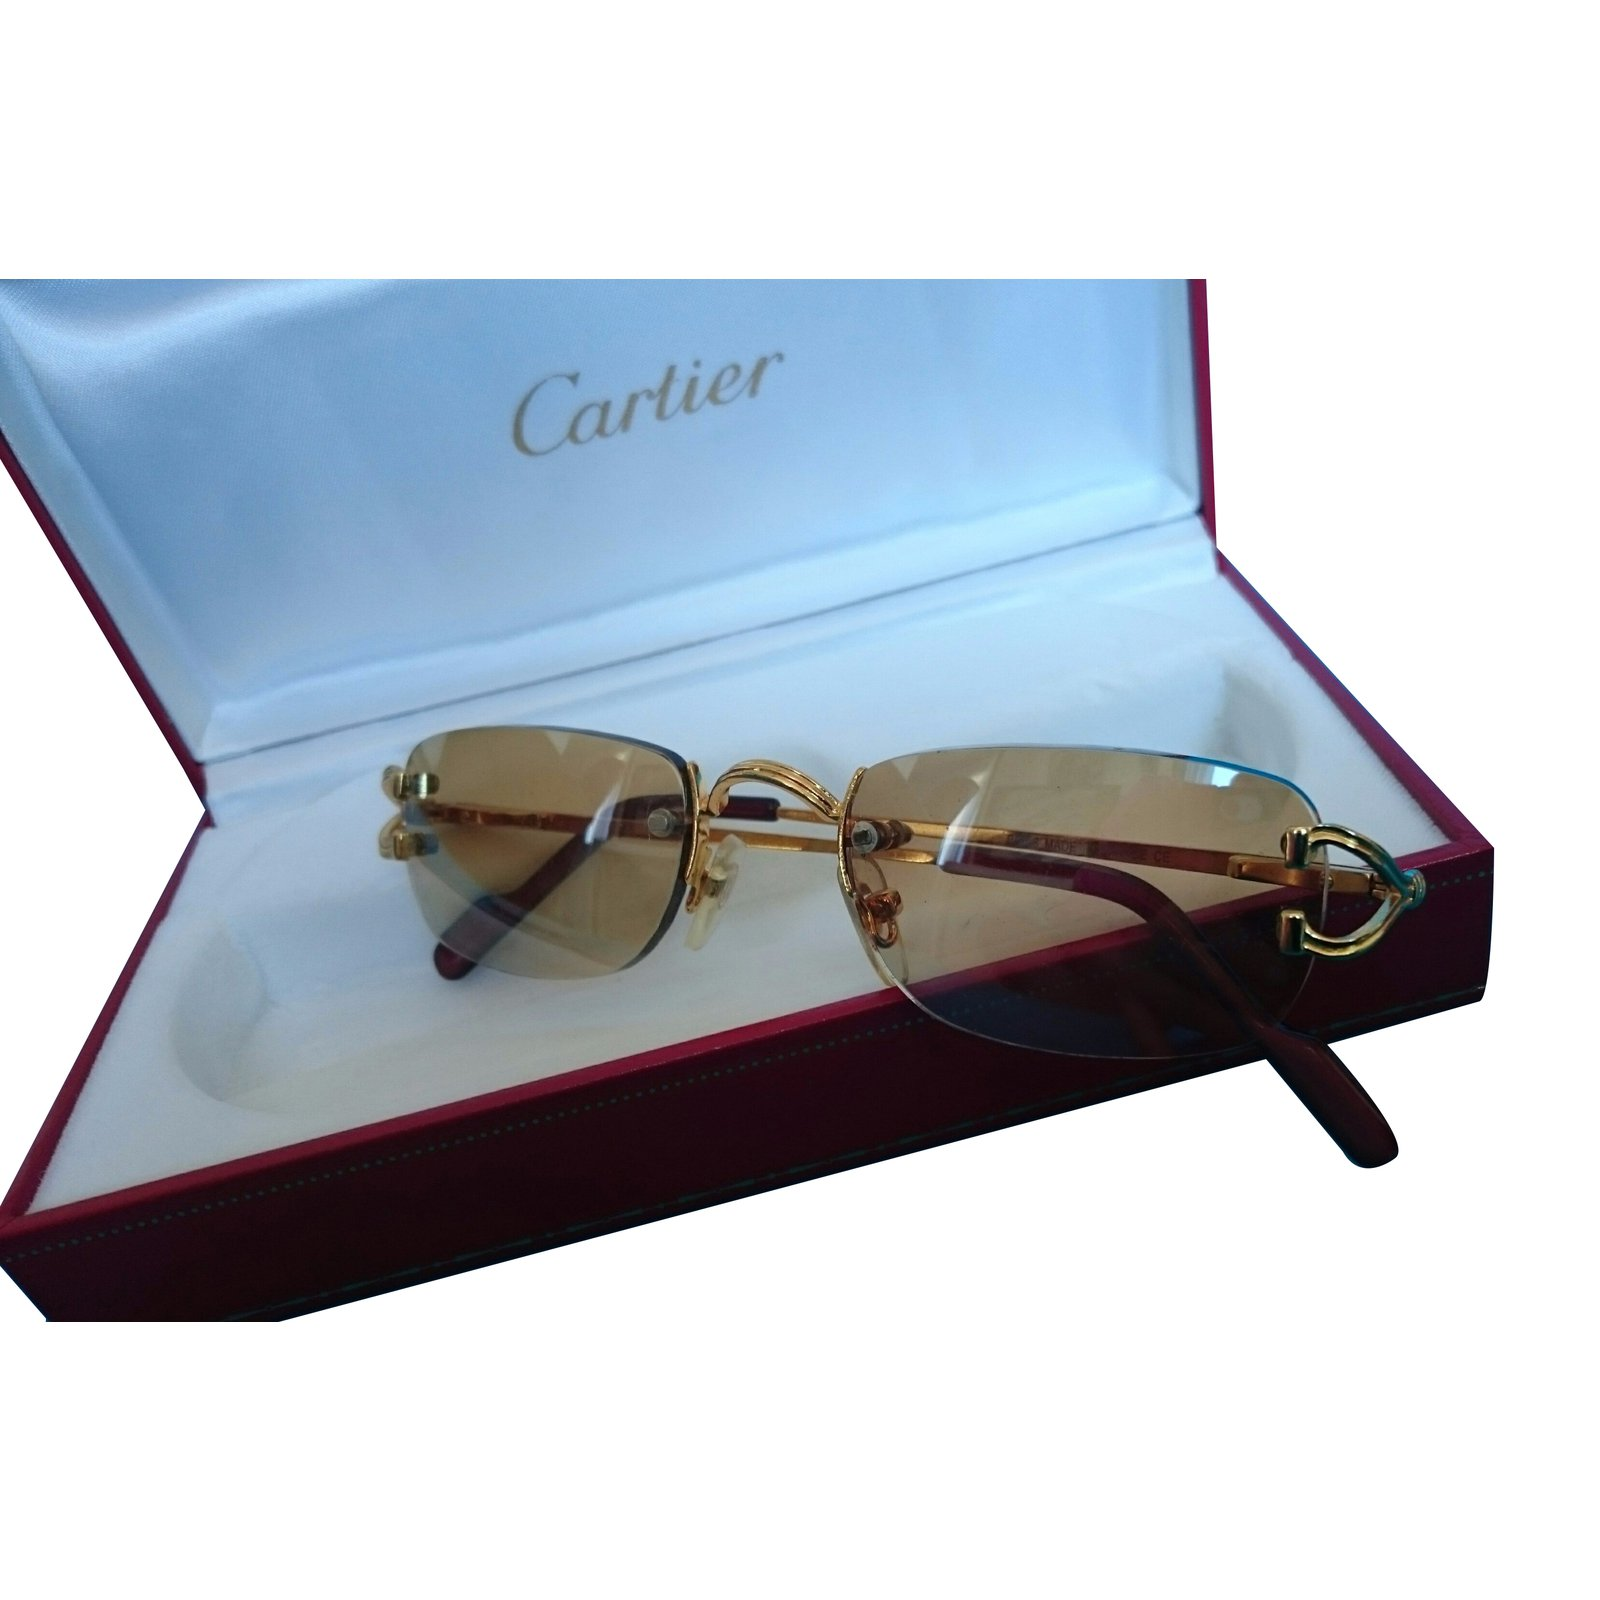 Cartier Sunglasses Sunglasses Gold plated Golden ref 24273   Joli Closet Cartier Sunglasses Sunglasses Gold plated Golden ref 24273